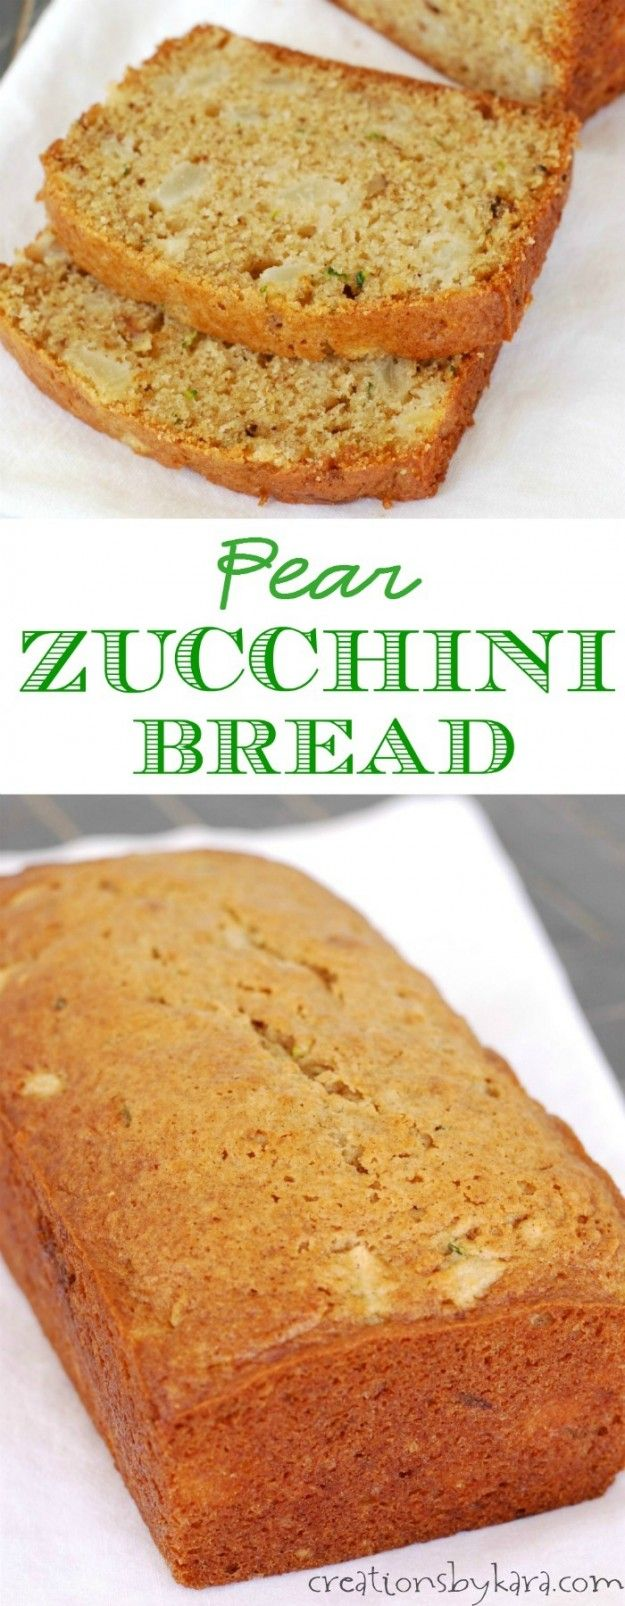 Chunks of juicy pear make every bite of this zucchini bread extra yummy!